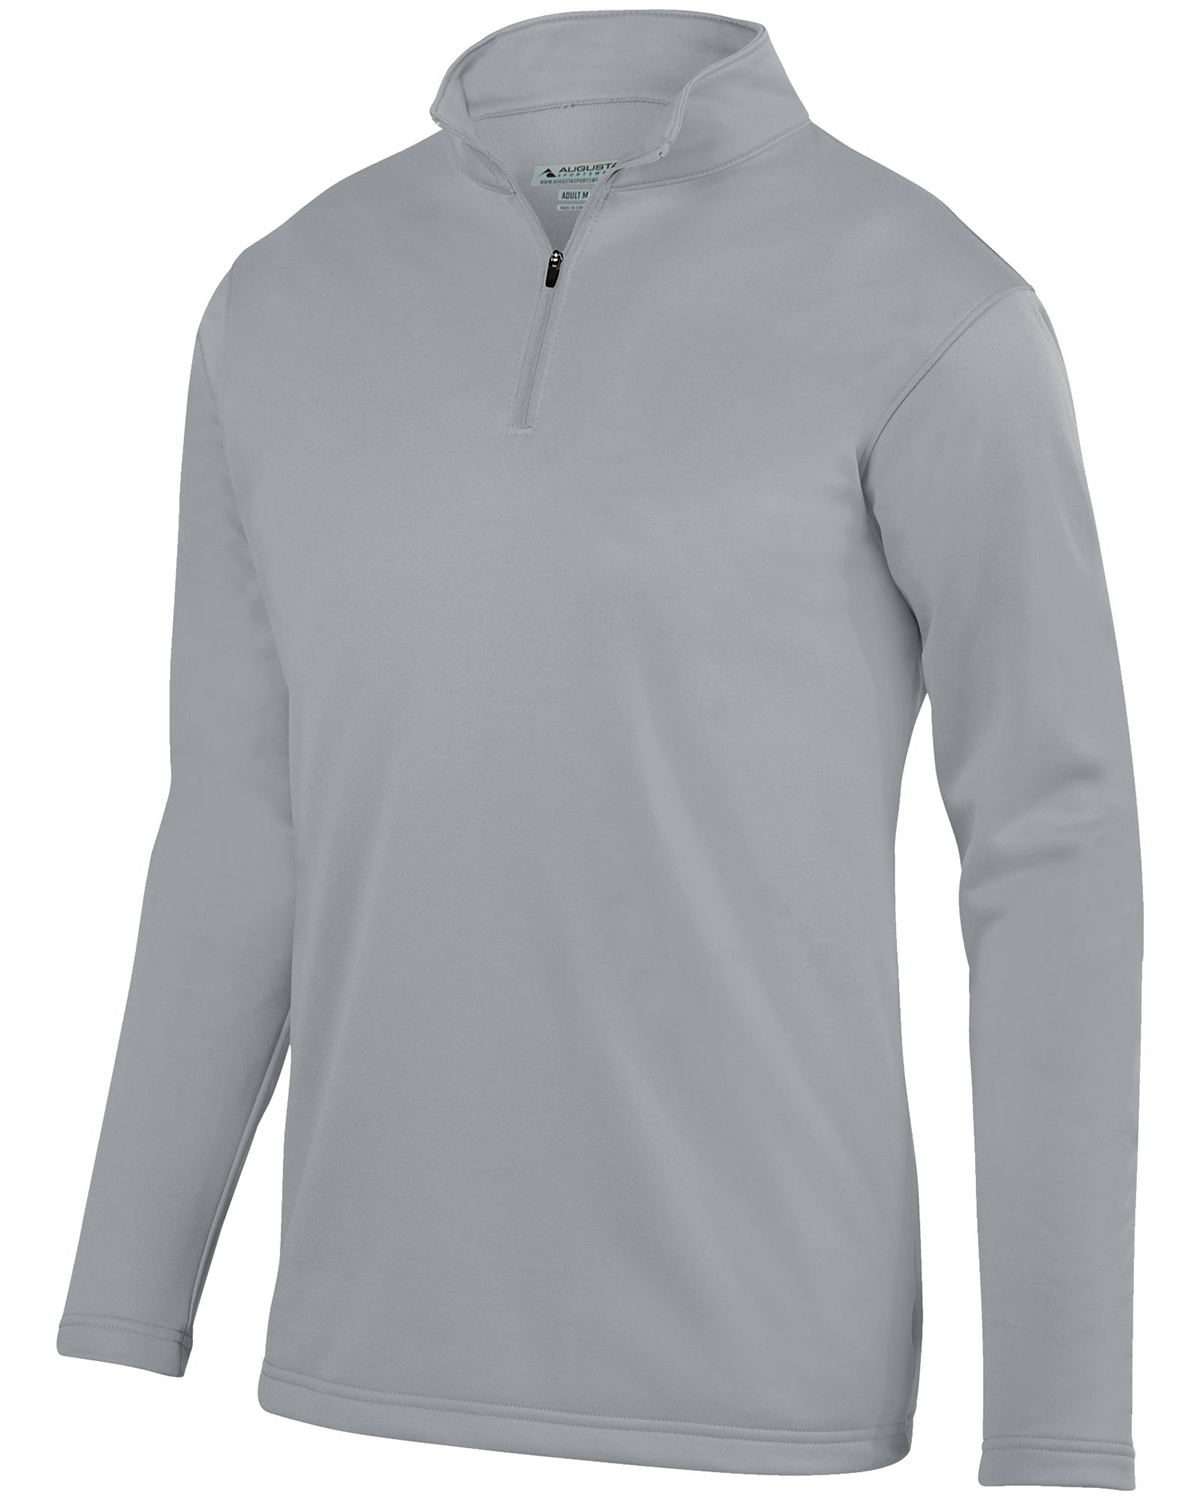 Augusta Drop Ship AG5508 - Youth Wicking Fleece Quarter-Zip Pullover